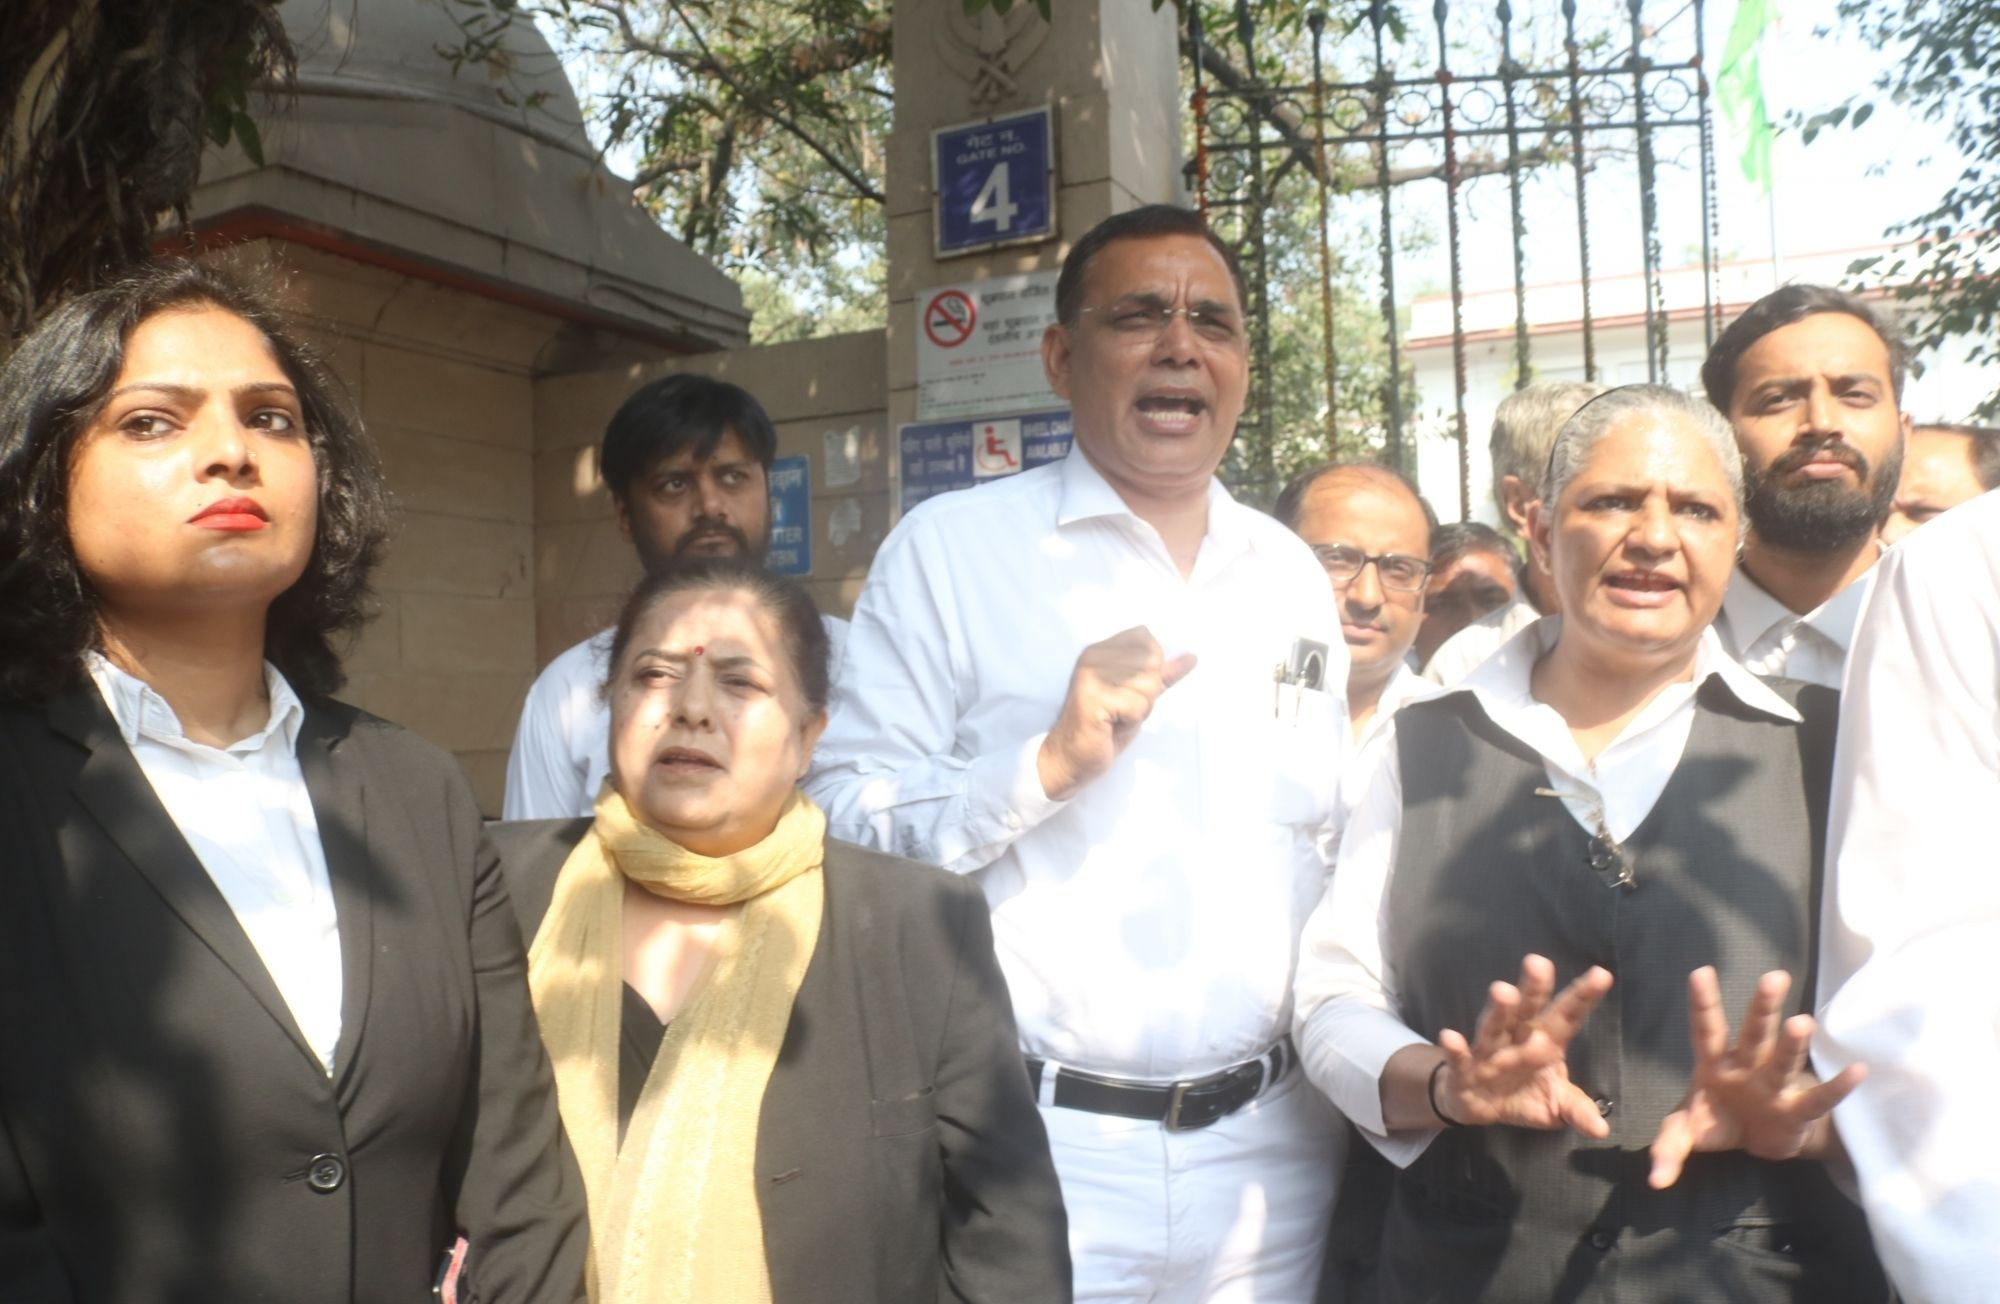 Lawyers gave flowers to public coming to Saket District Court